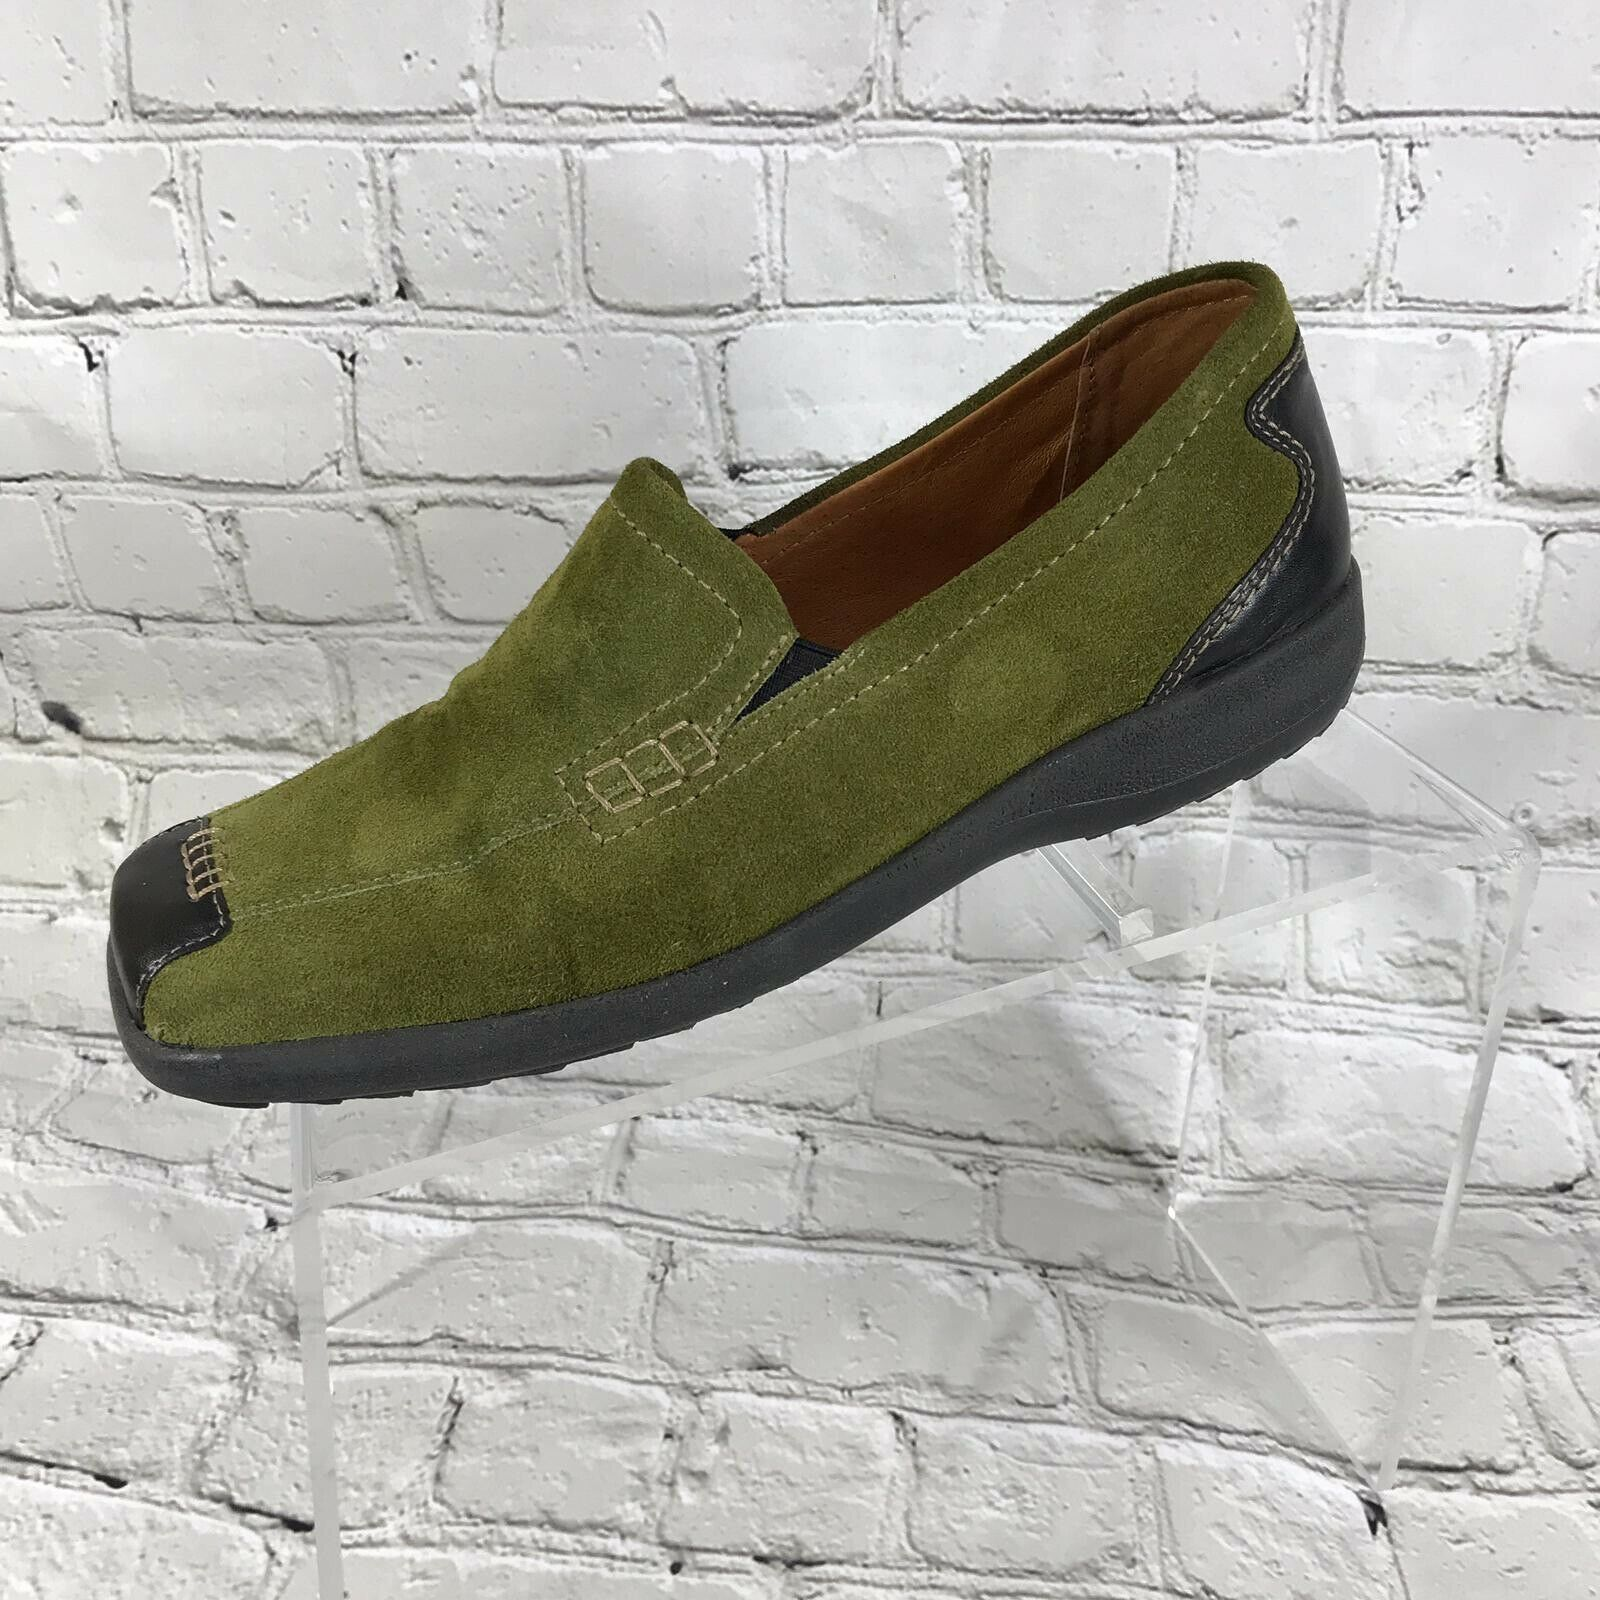 Spring Step women  Green Leather and Suede Loafers US Size 8.5